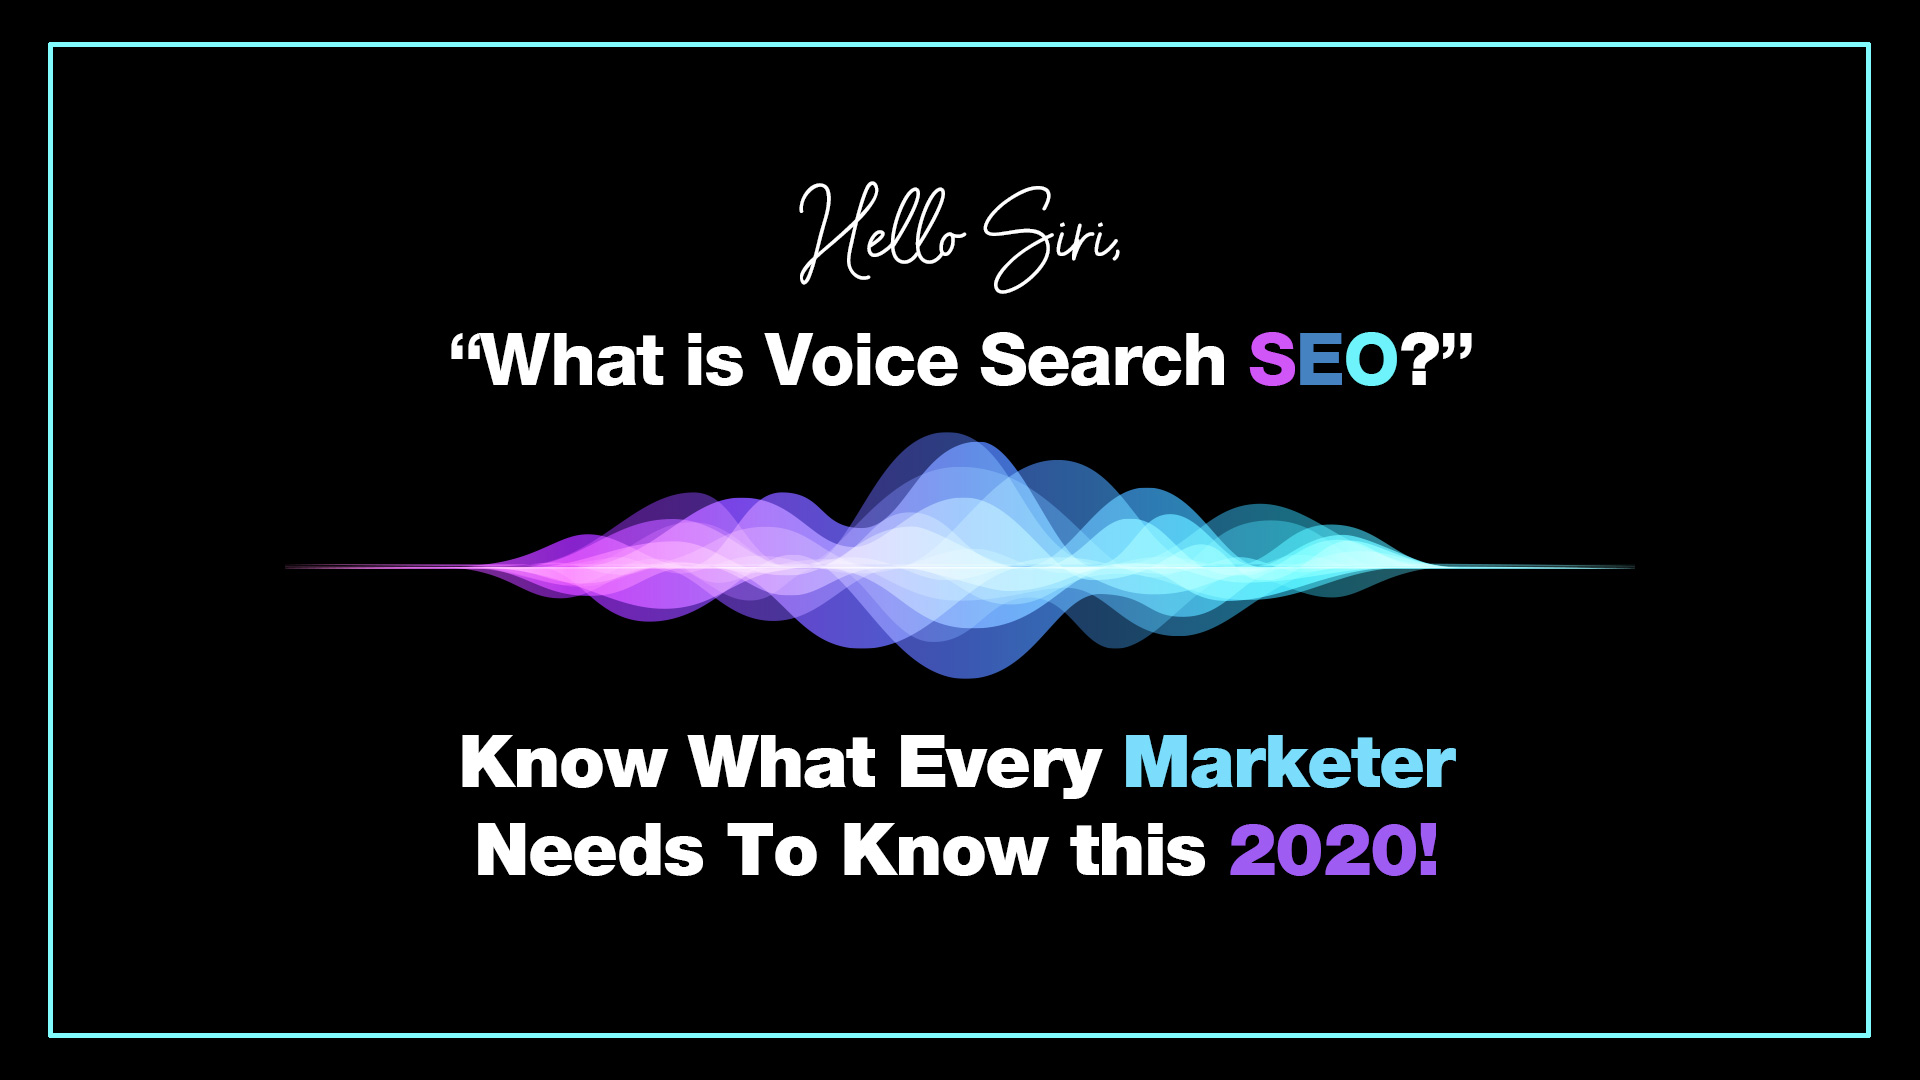 """Hello Siri, """"What is Voice Search SEO?"""""""